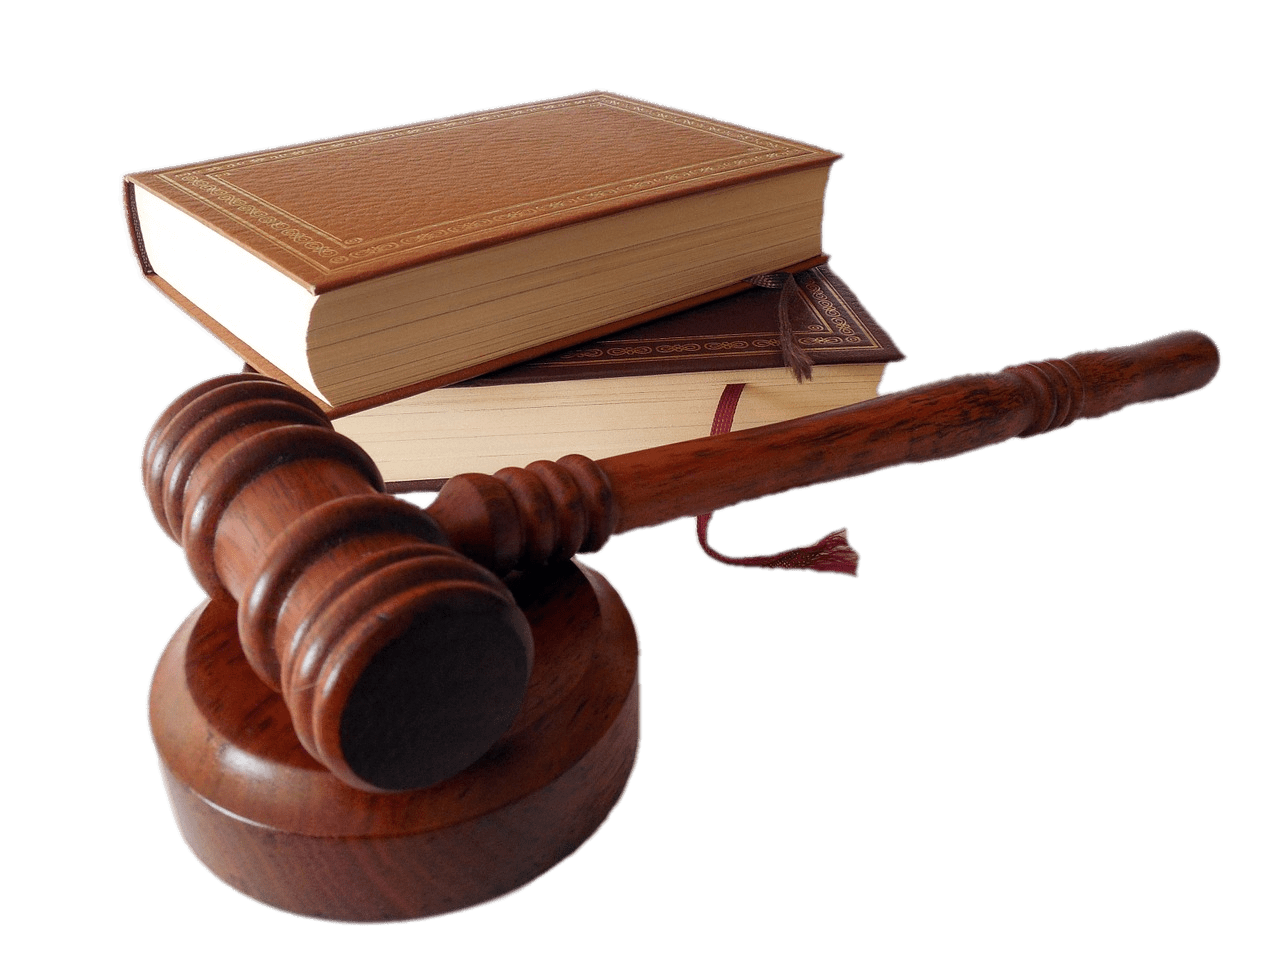 Judges hammer and books. Gavel clipart common law